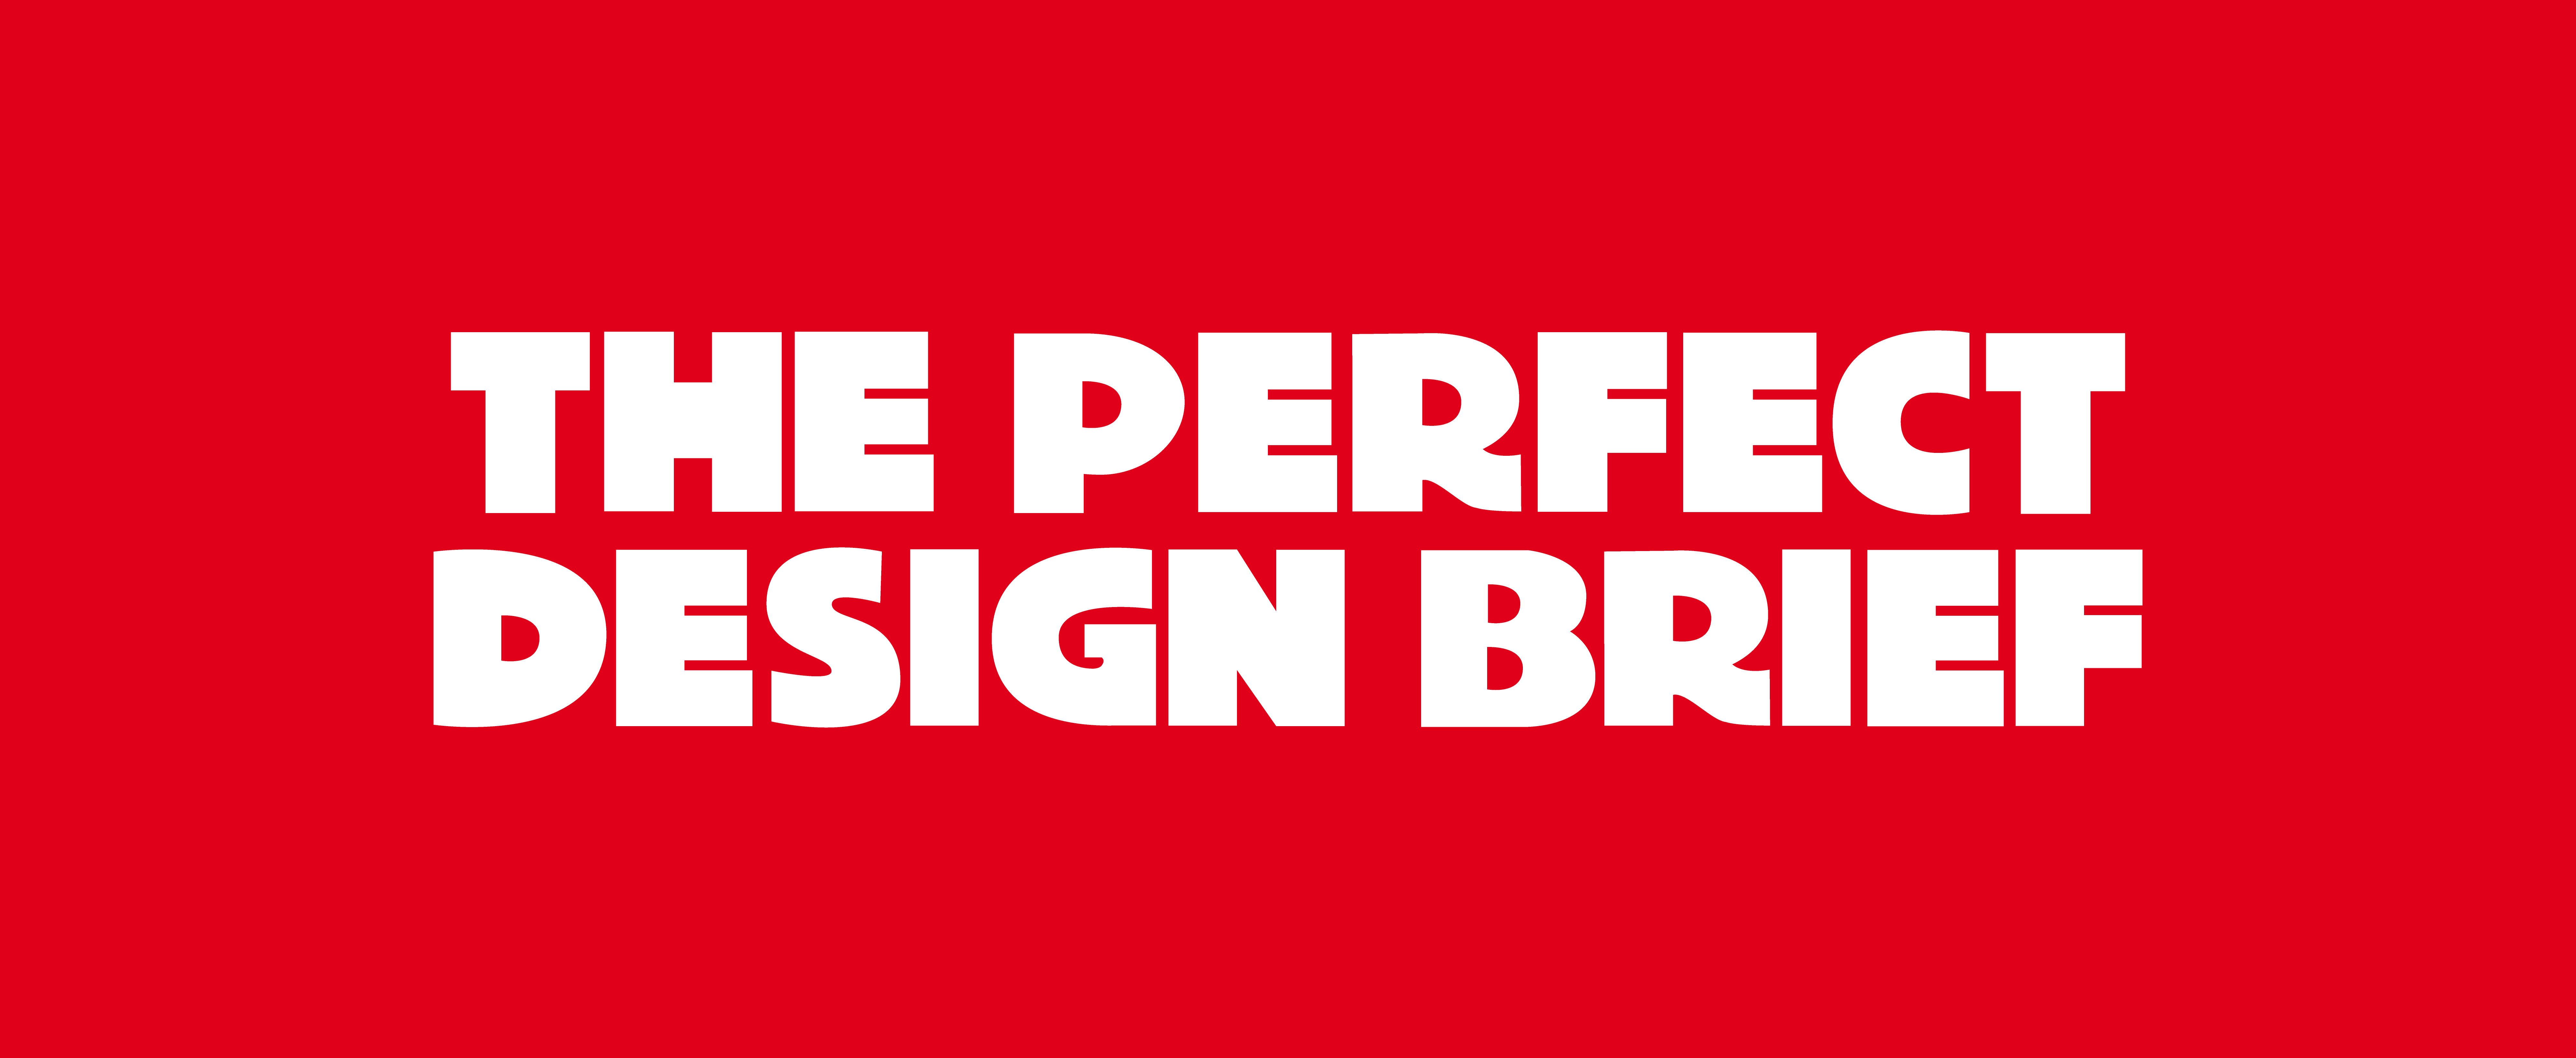 How to write the perfect design brief